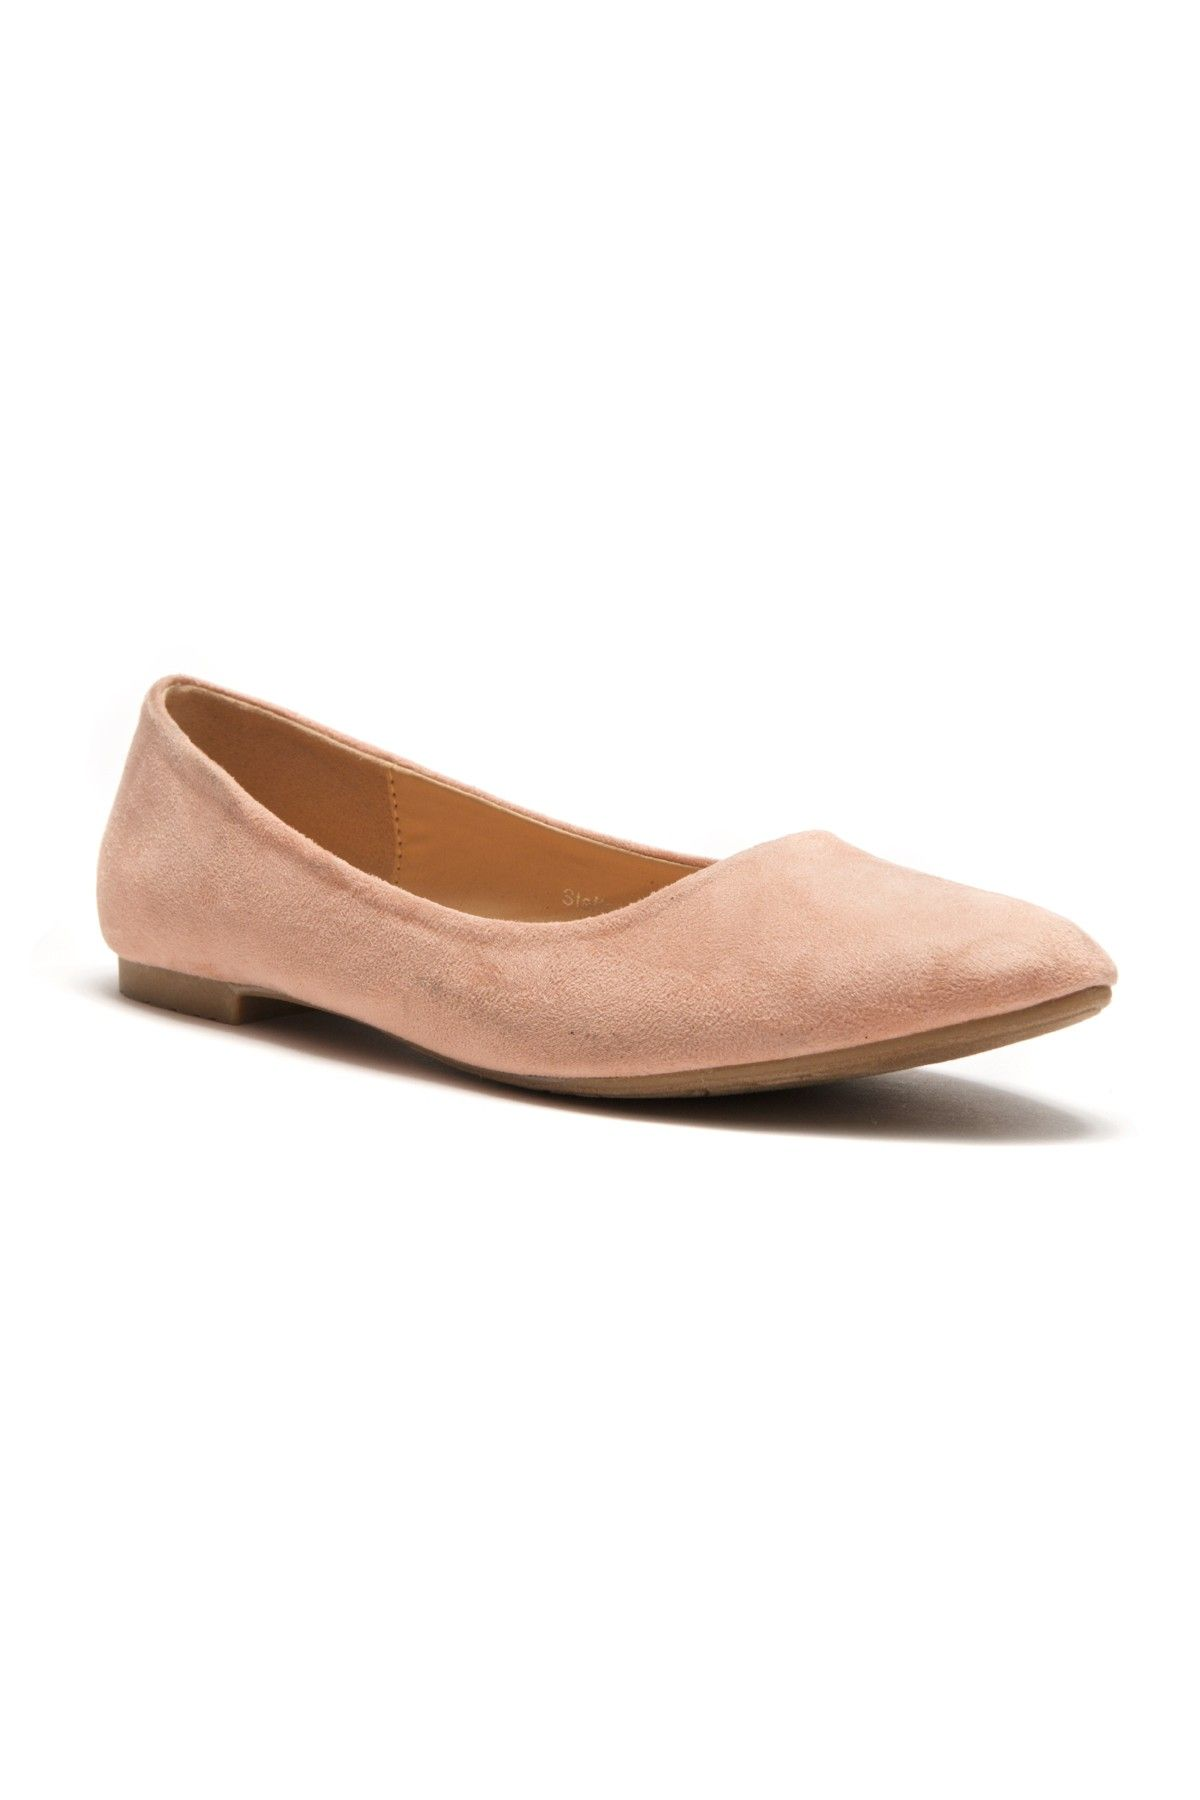 cf1d884dea HerStyle Women's Manmade Nstaffno Simple Faux Suede Pointy Toe Flats - Pink